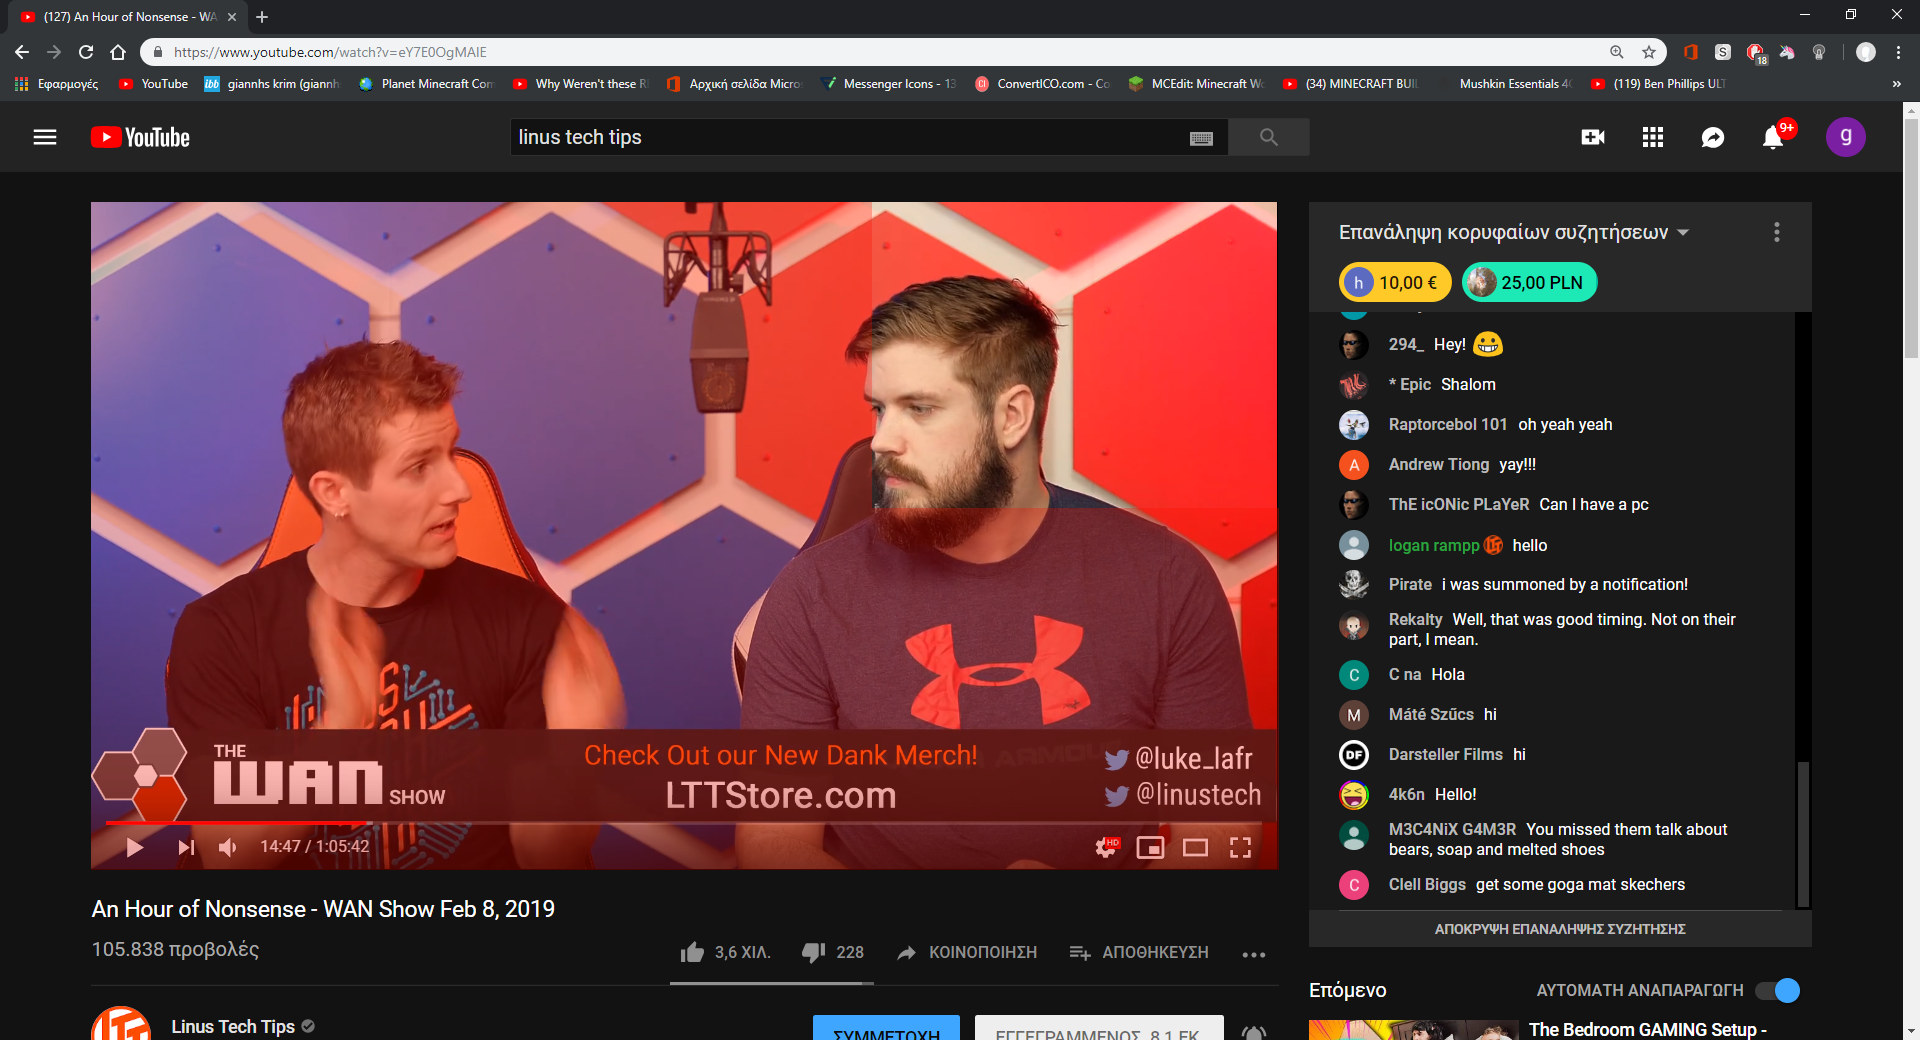 Youtube videos have a red tint to them - Graphics Cards - Linus Tech